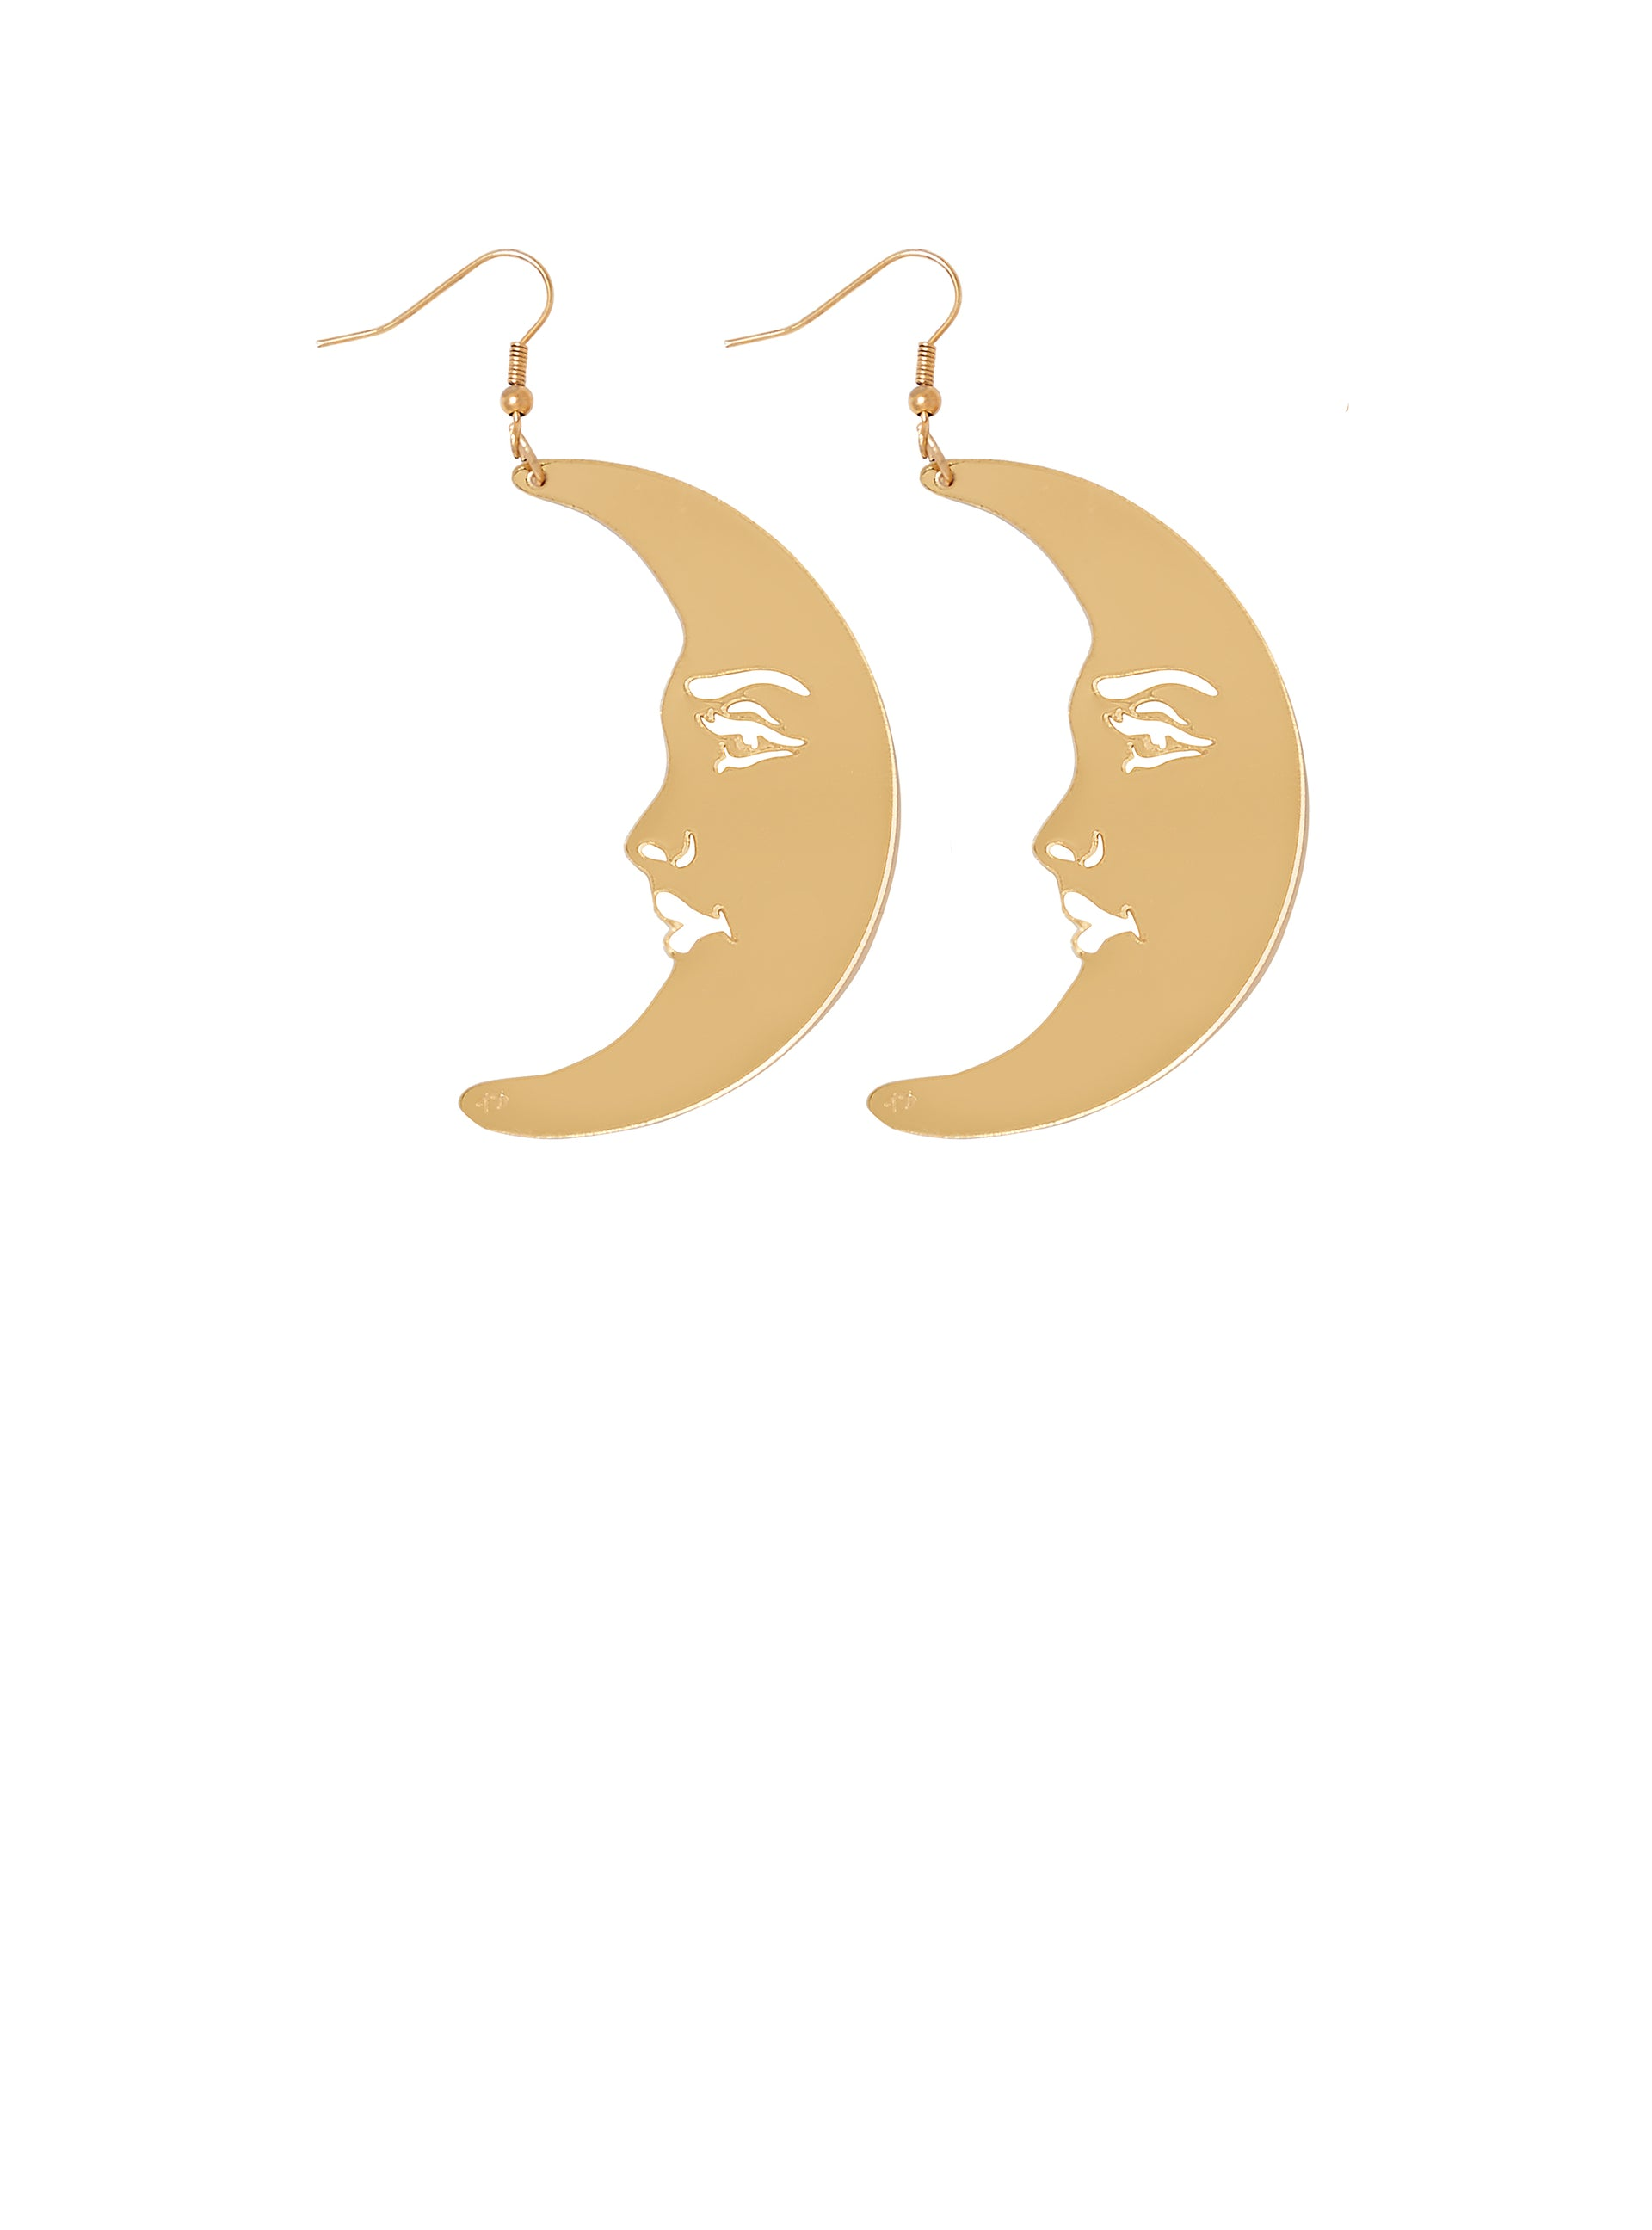 La Luna Moon Earrings - Gold